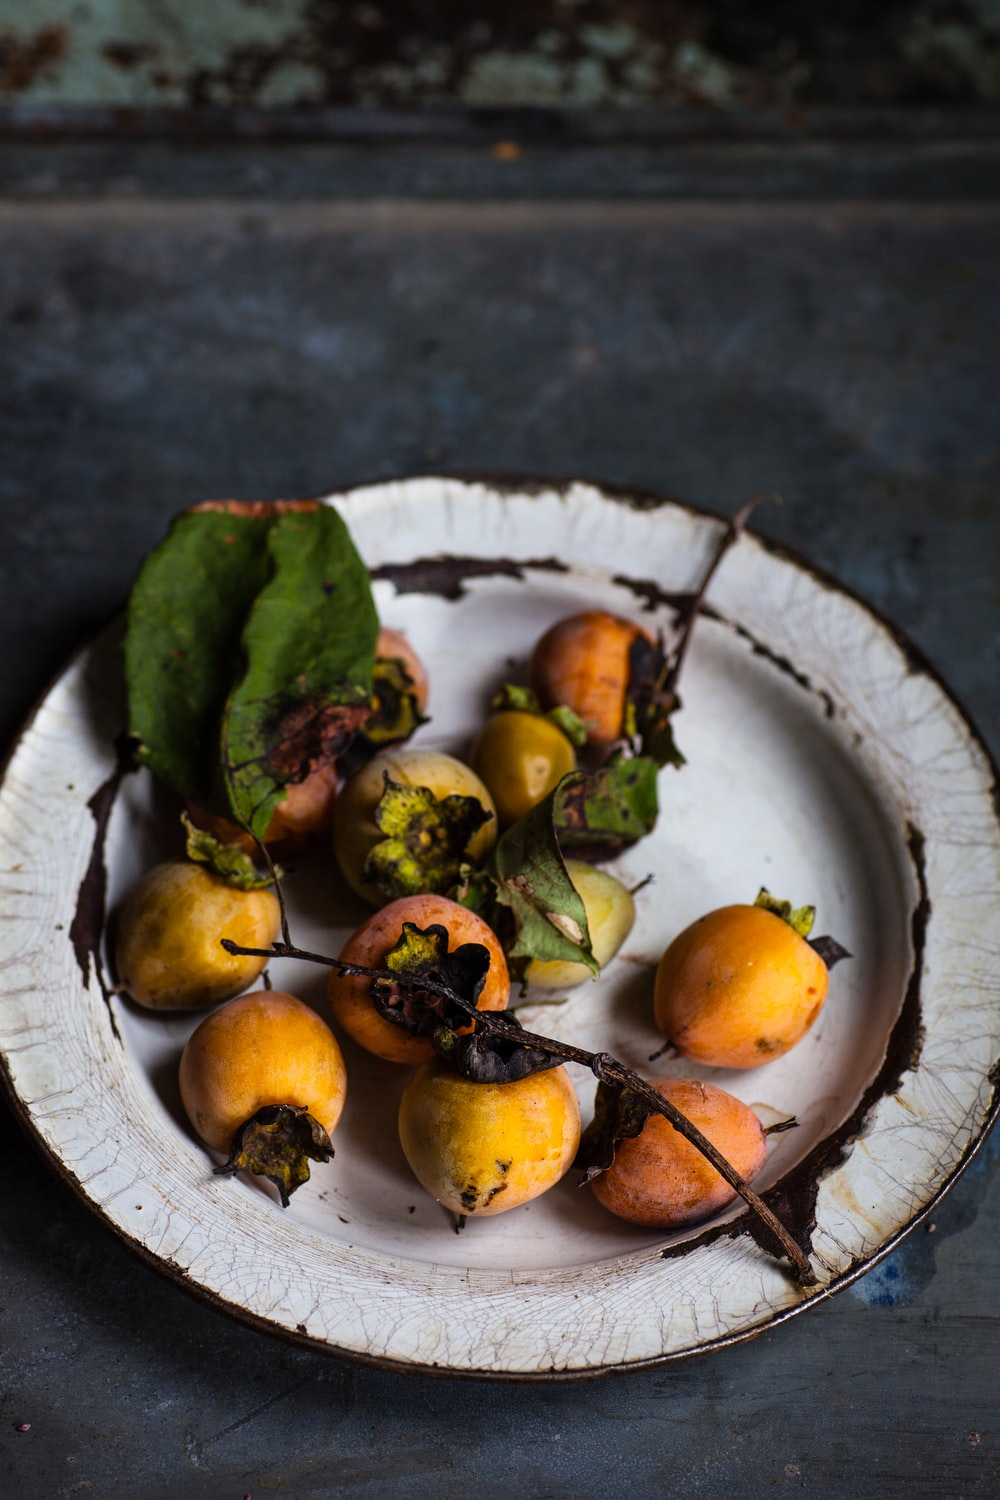 round yellow fruits on ceramic plate